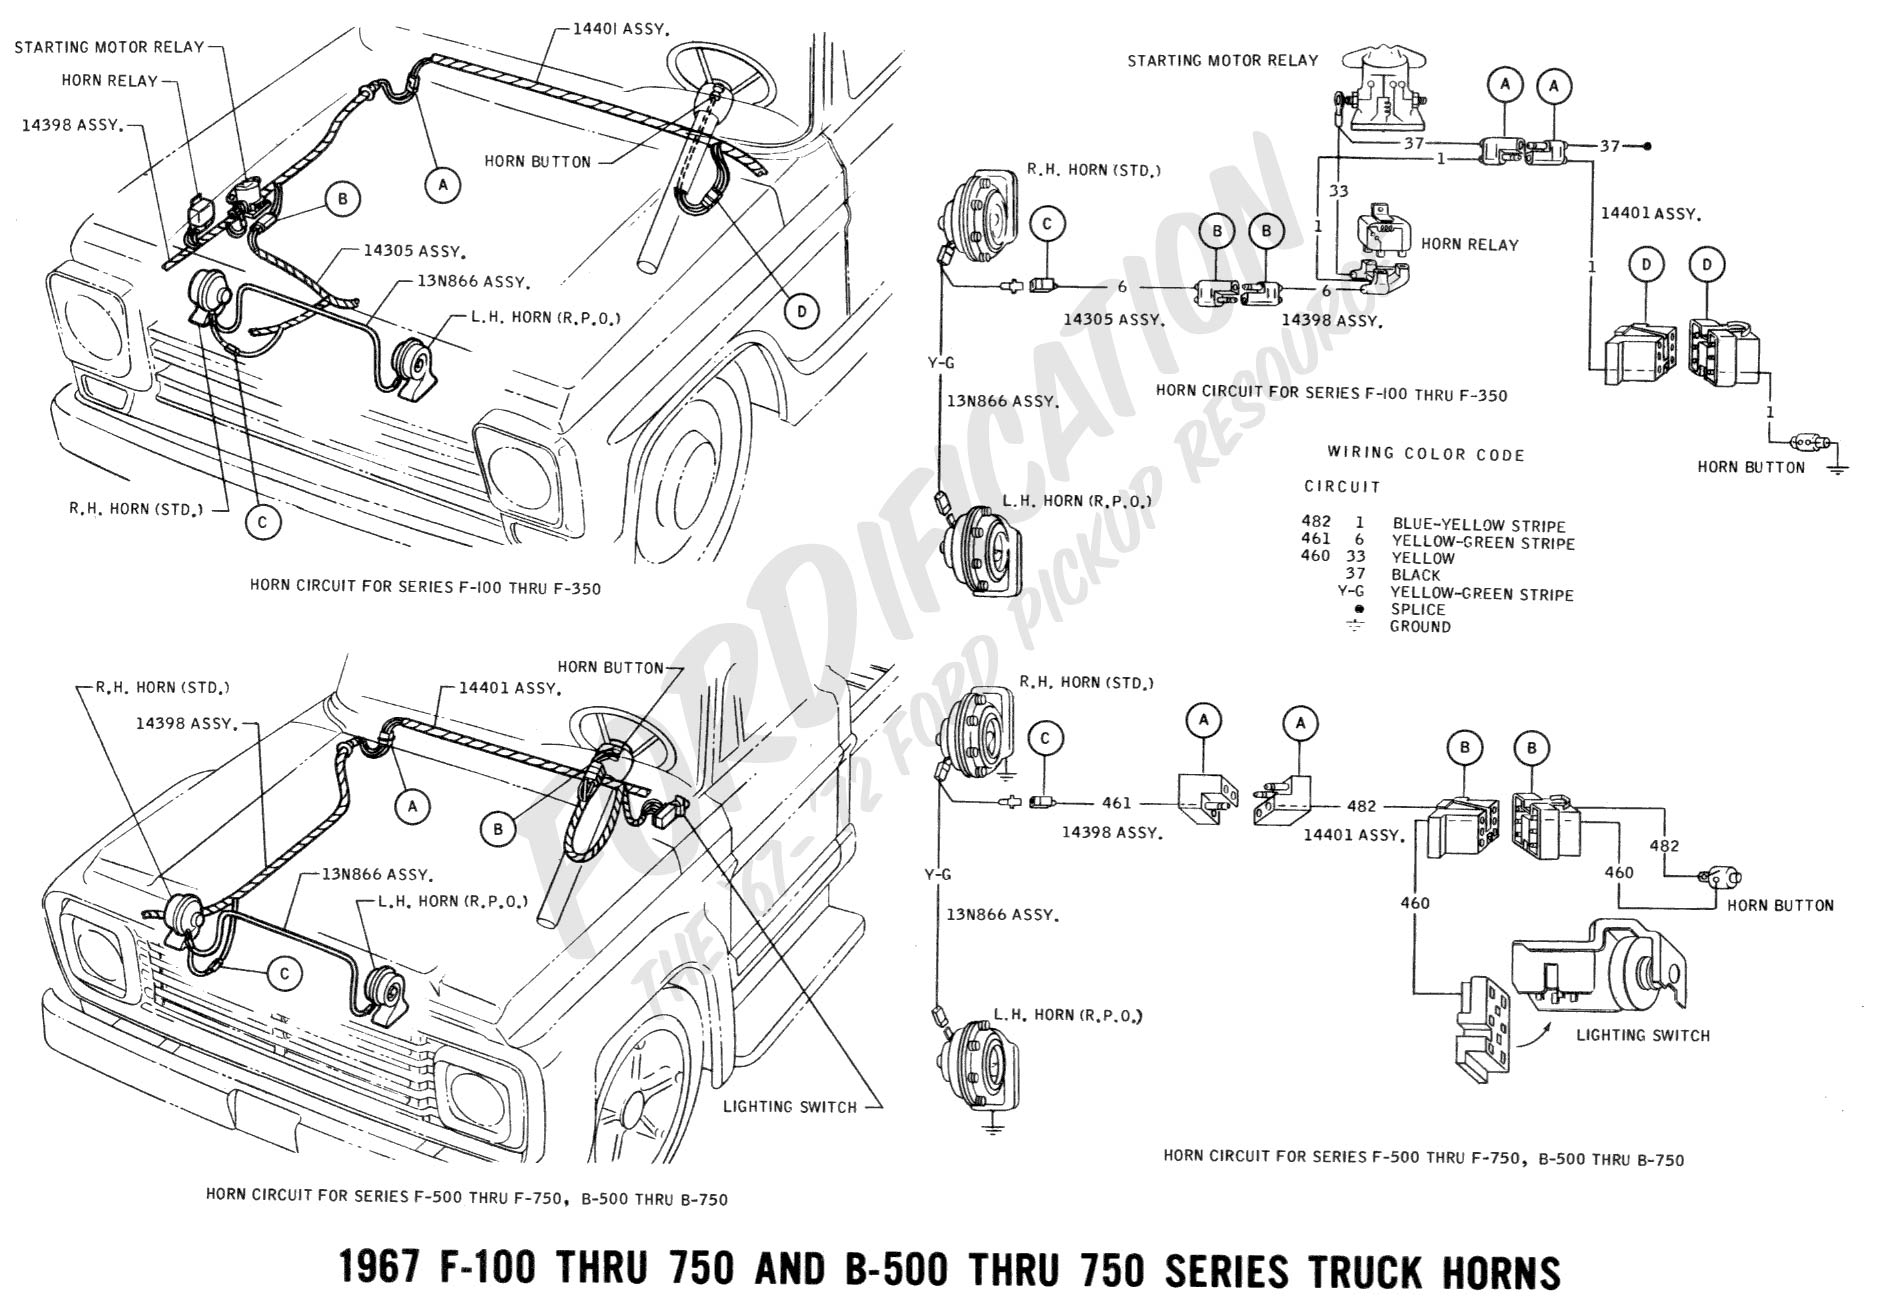 Surprising 1976 Ford Wiring Diagram Basic Electronics Wiring Diagram Wiring Cloud Geisbieswglorg